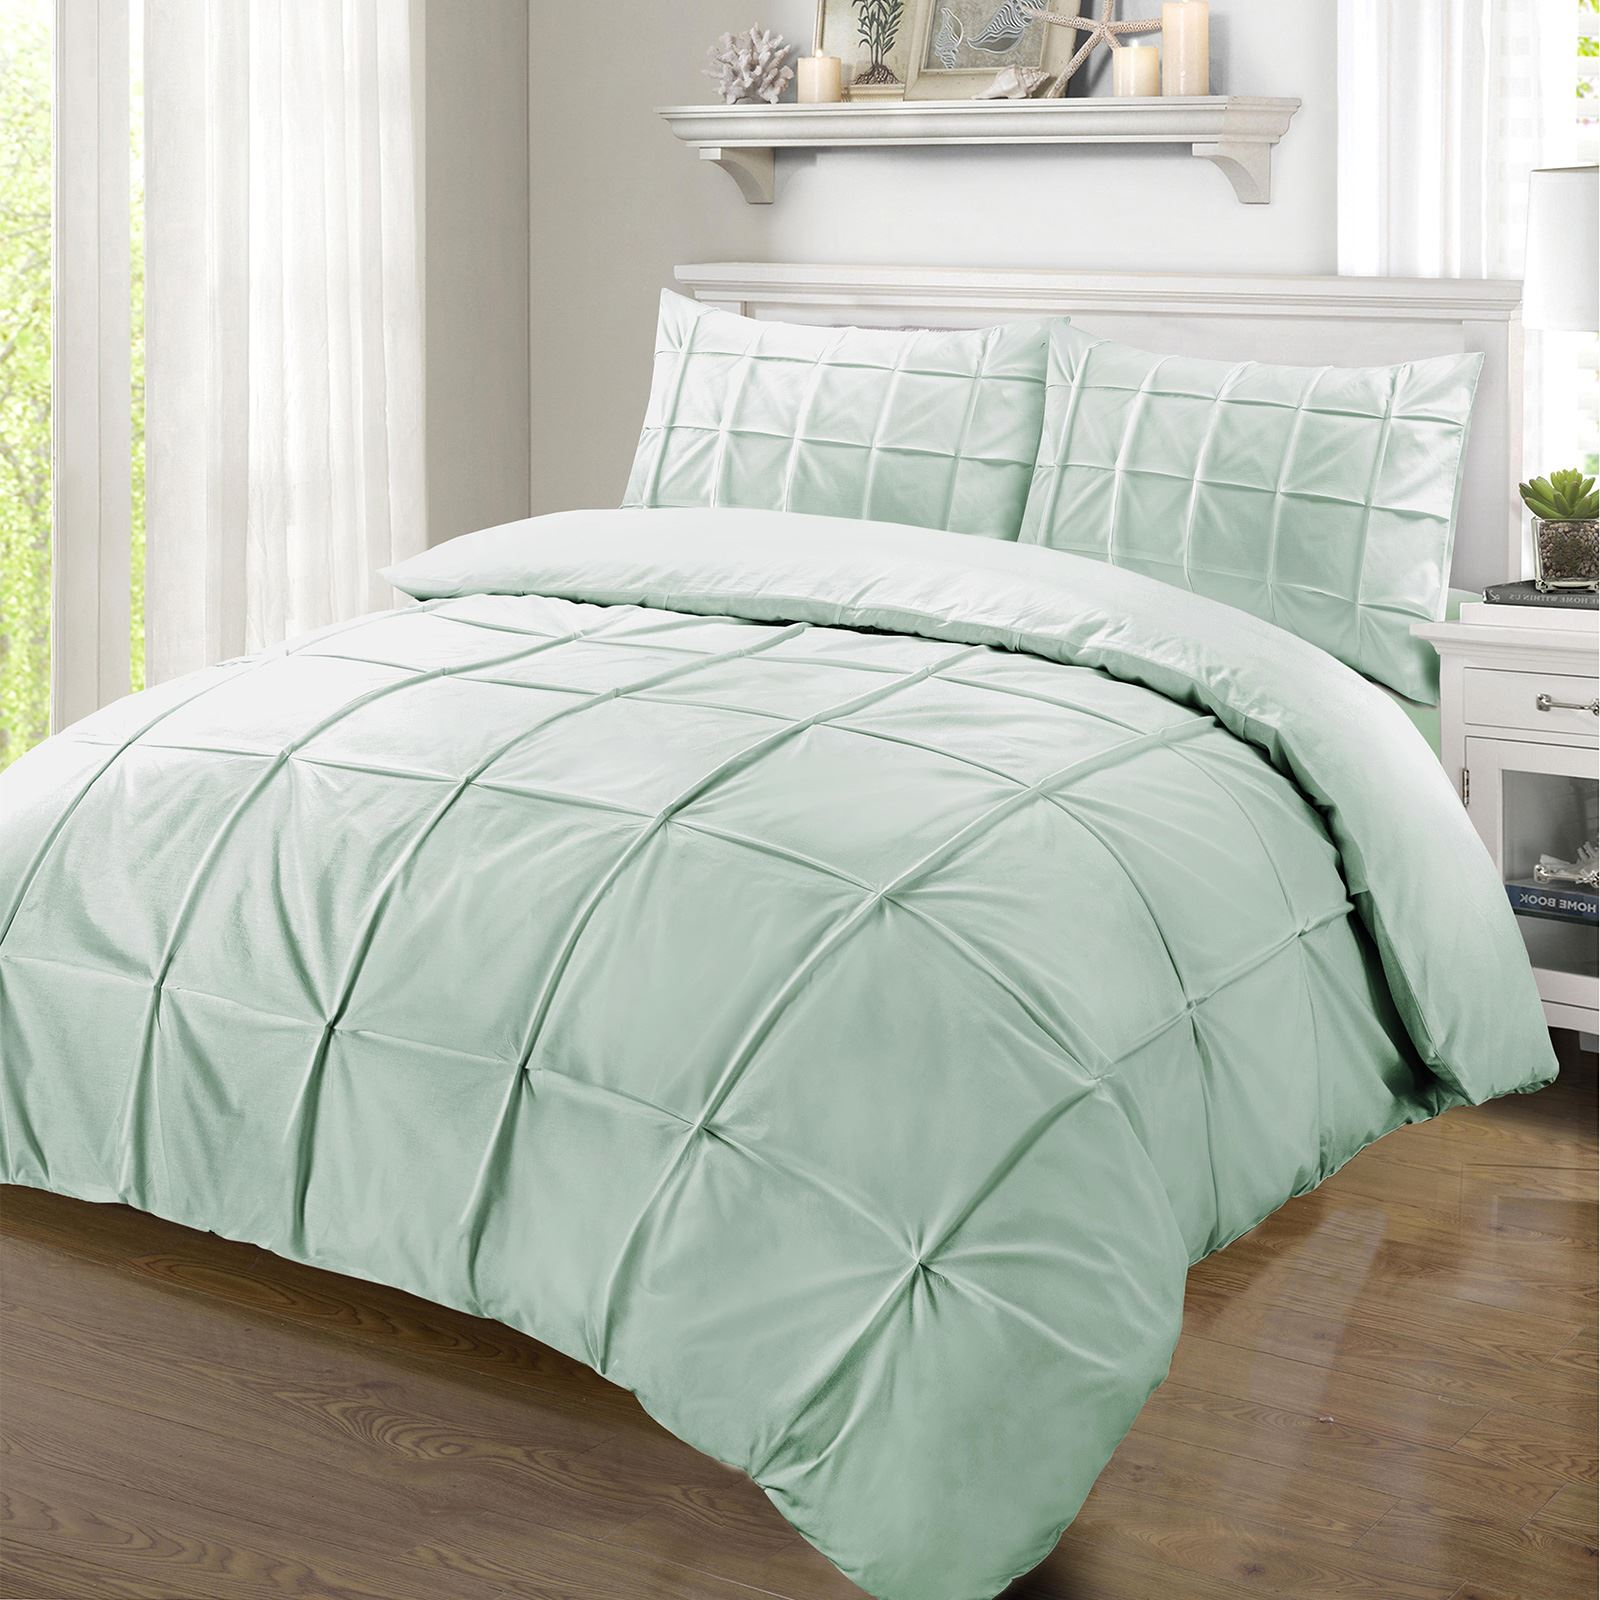 duvet isabella piece embroidered belvia products cover white bedding ella pleated design set home isadora isla chic